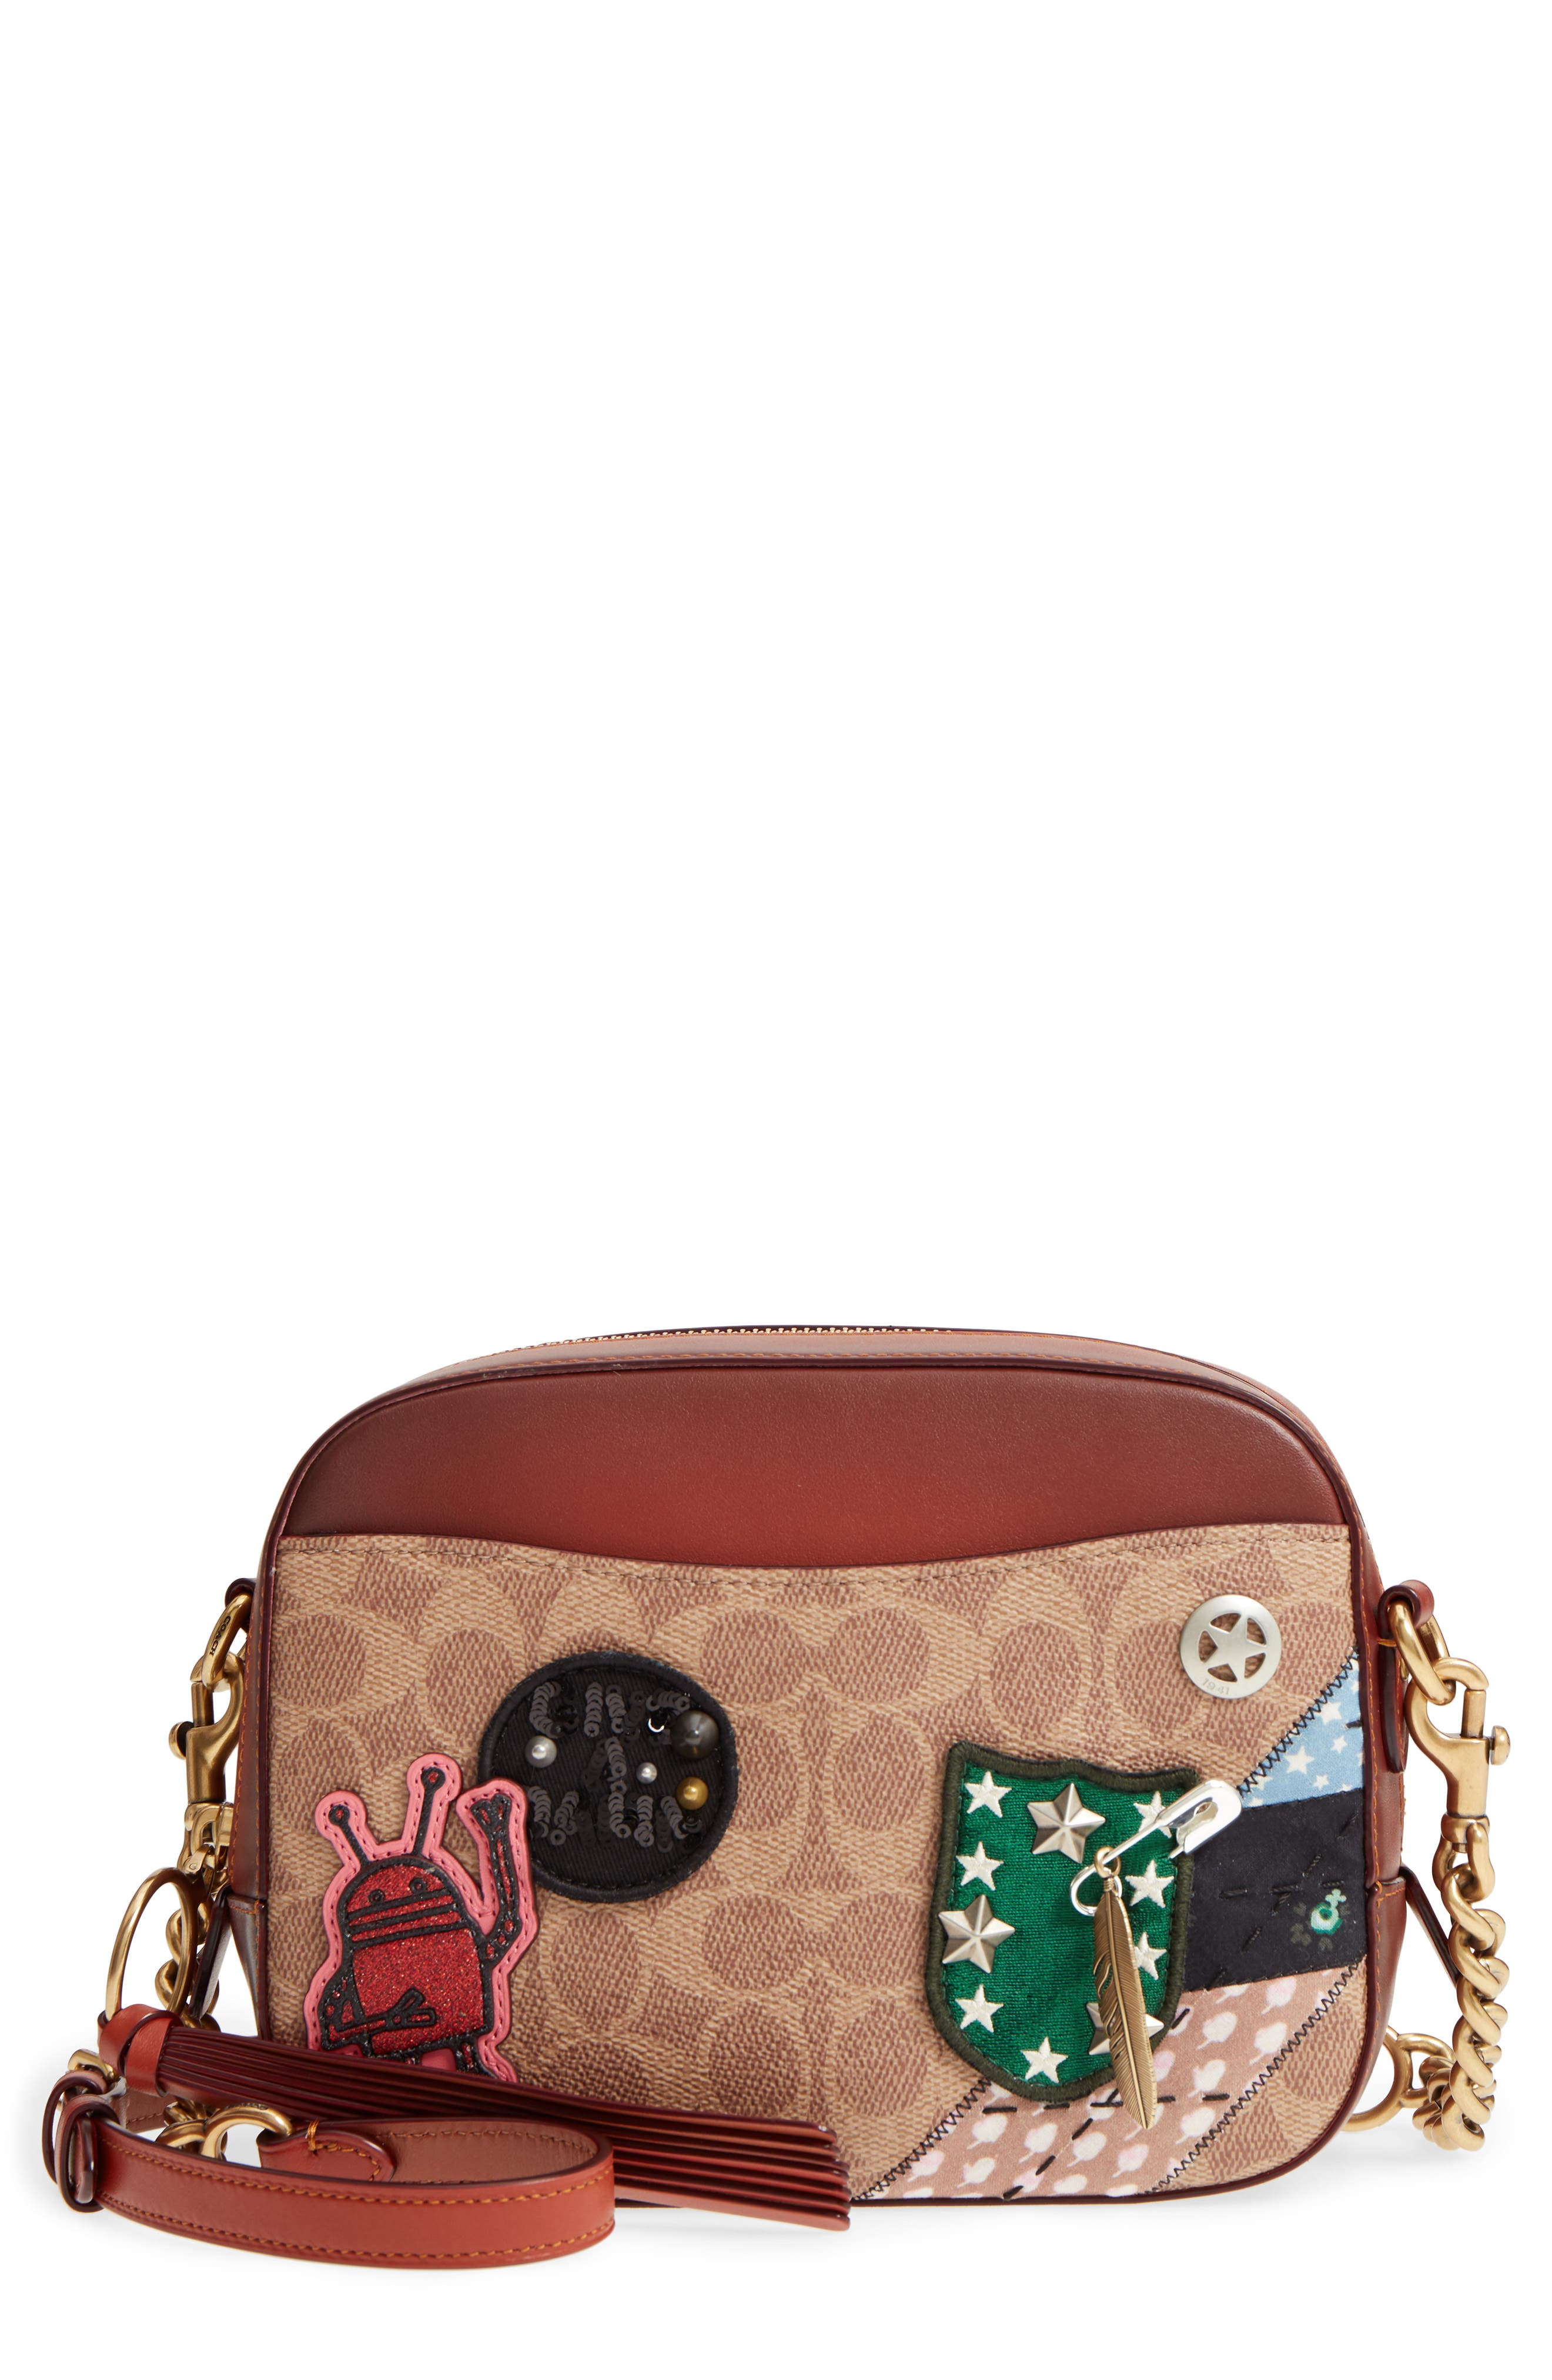 x Keith Haring Signature Patchwork Camera Bag,                         Main,                         color, BRASS/RUST